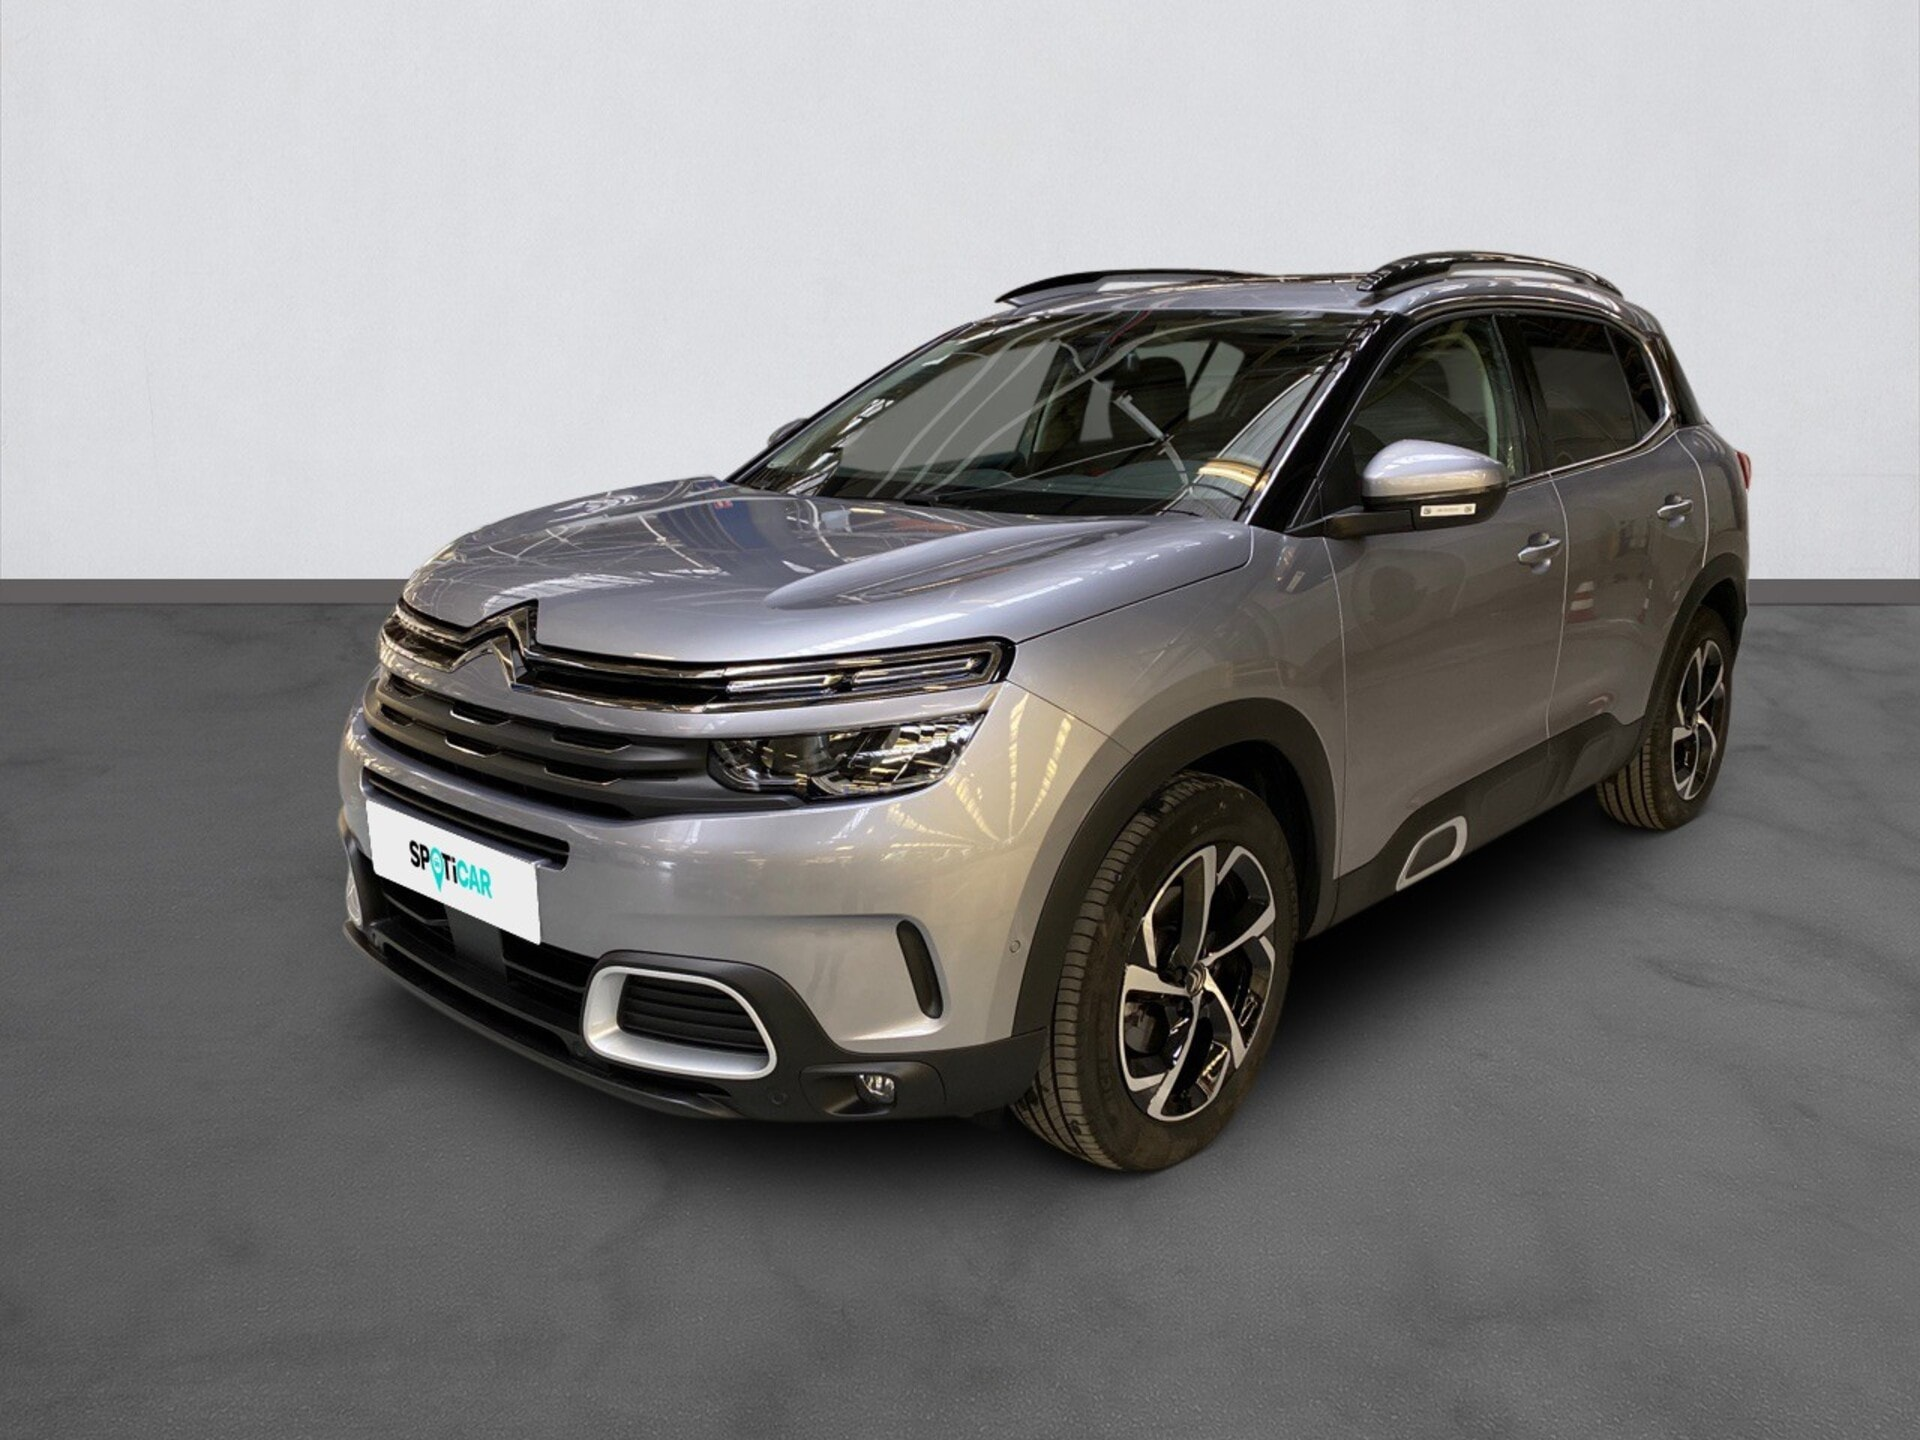 CITROEN C5 AIRCROSS BLUEHDI 130 S&S BVM6 FEEL - Carventura